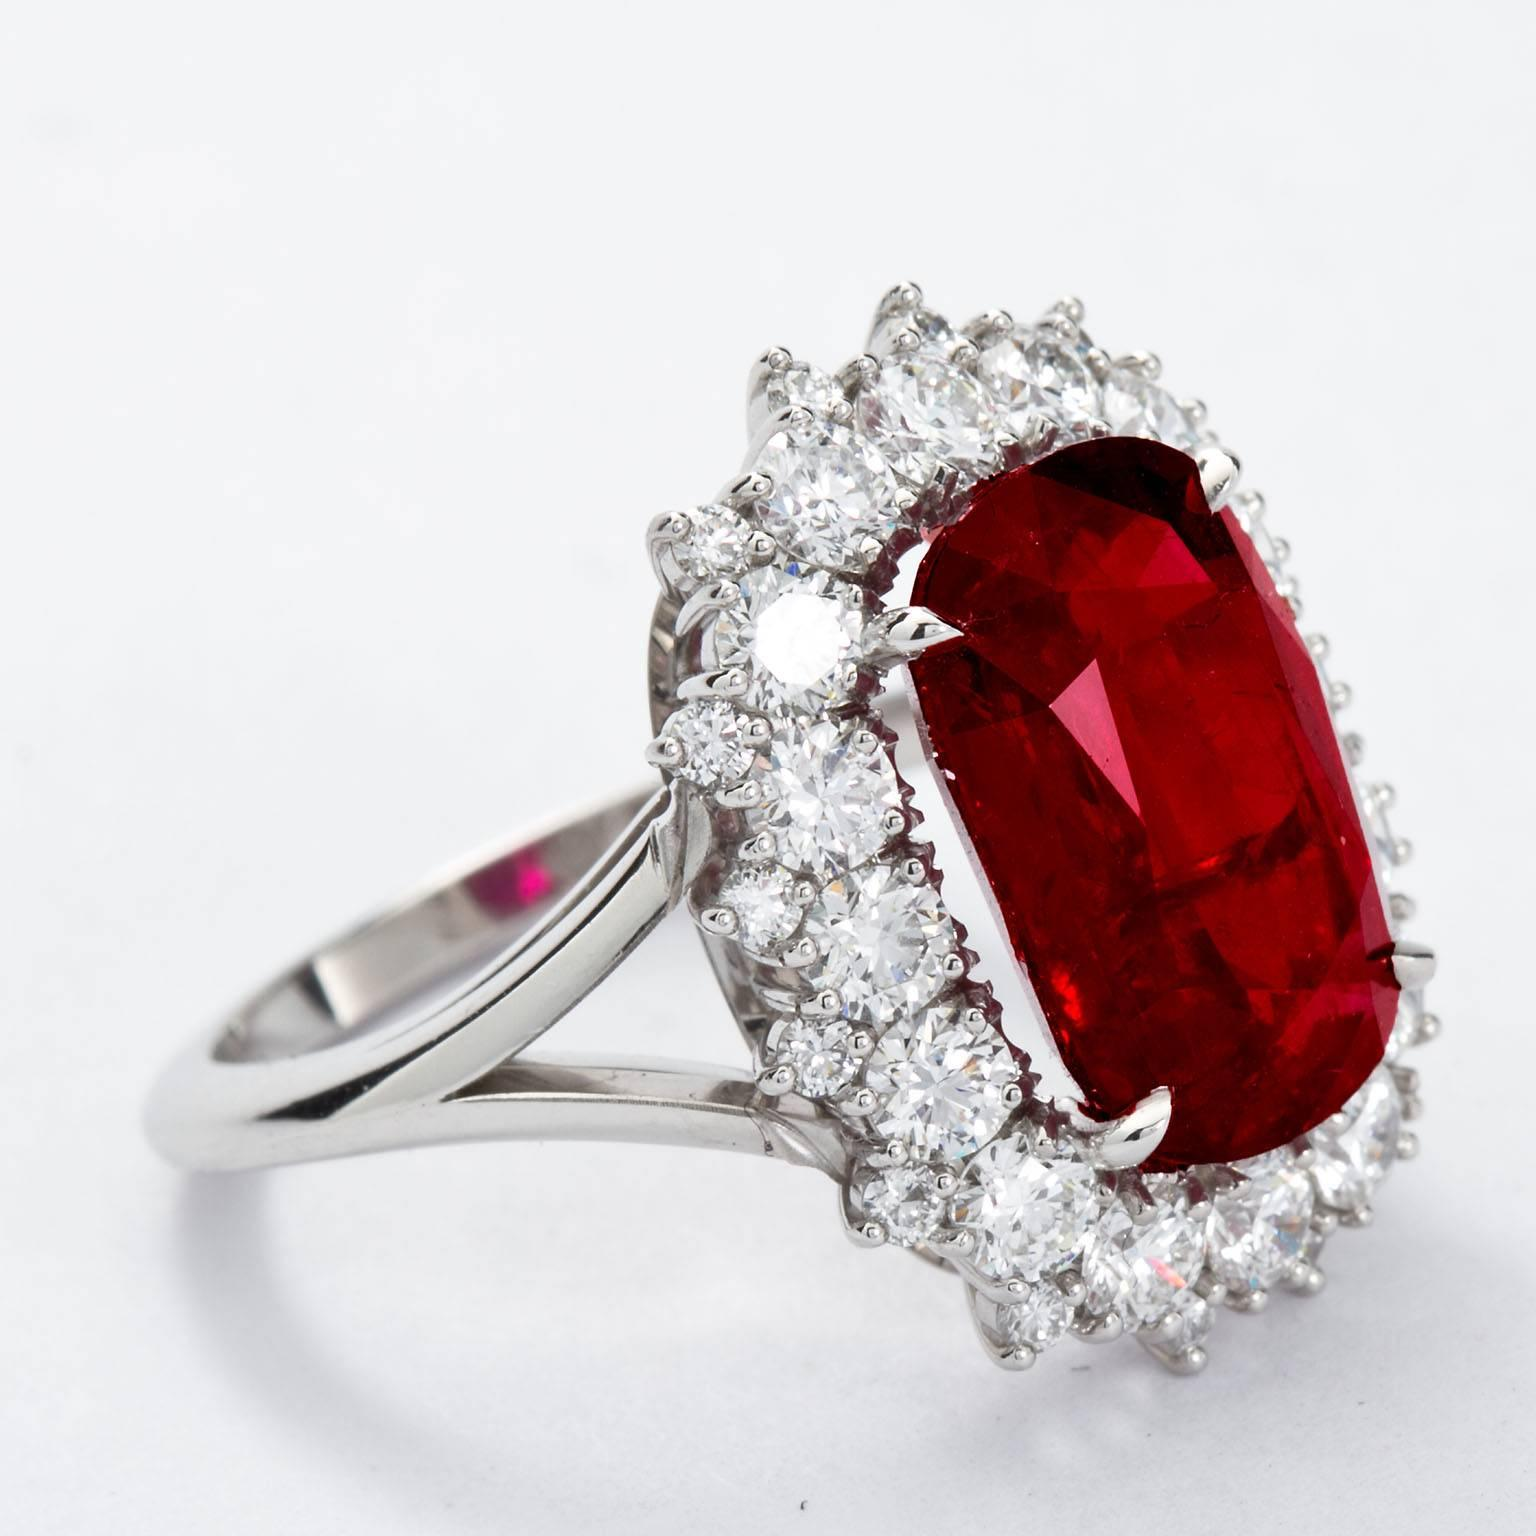 blood new to source know ethical getting a free diamond impakter pexels rings conflict diamonds photo foundry